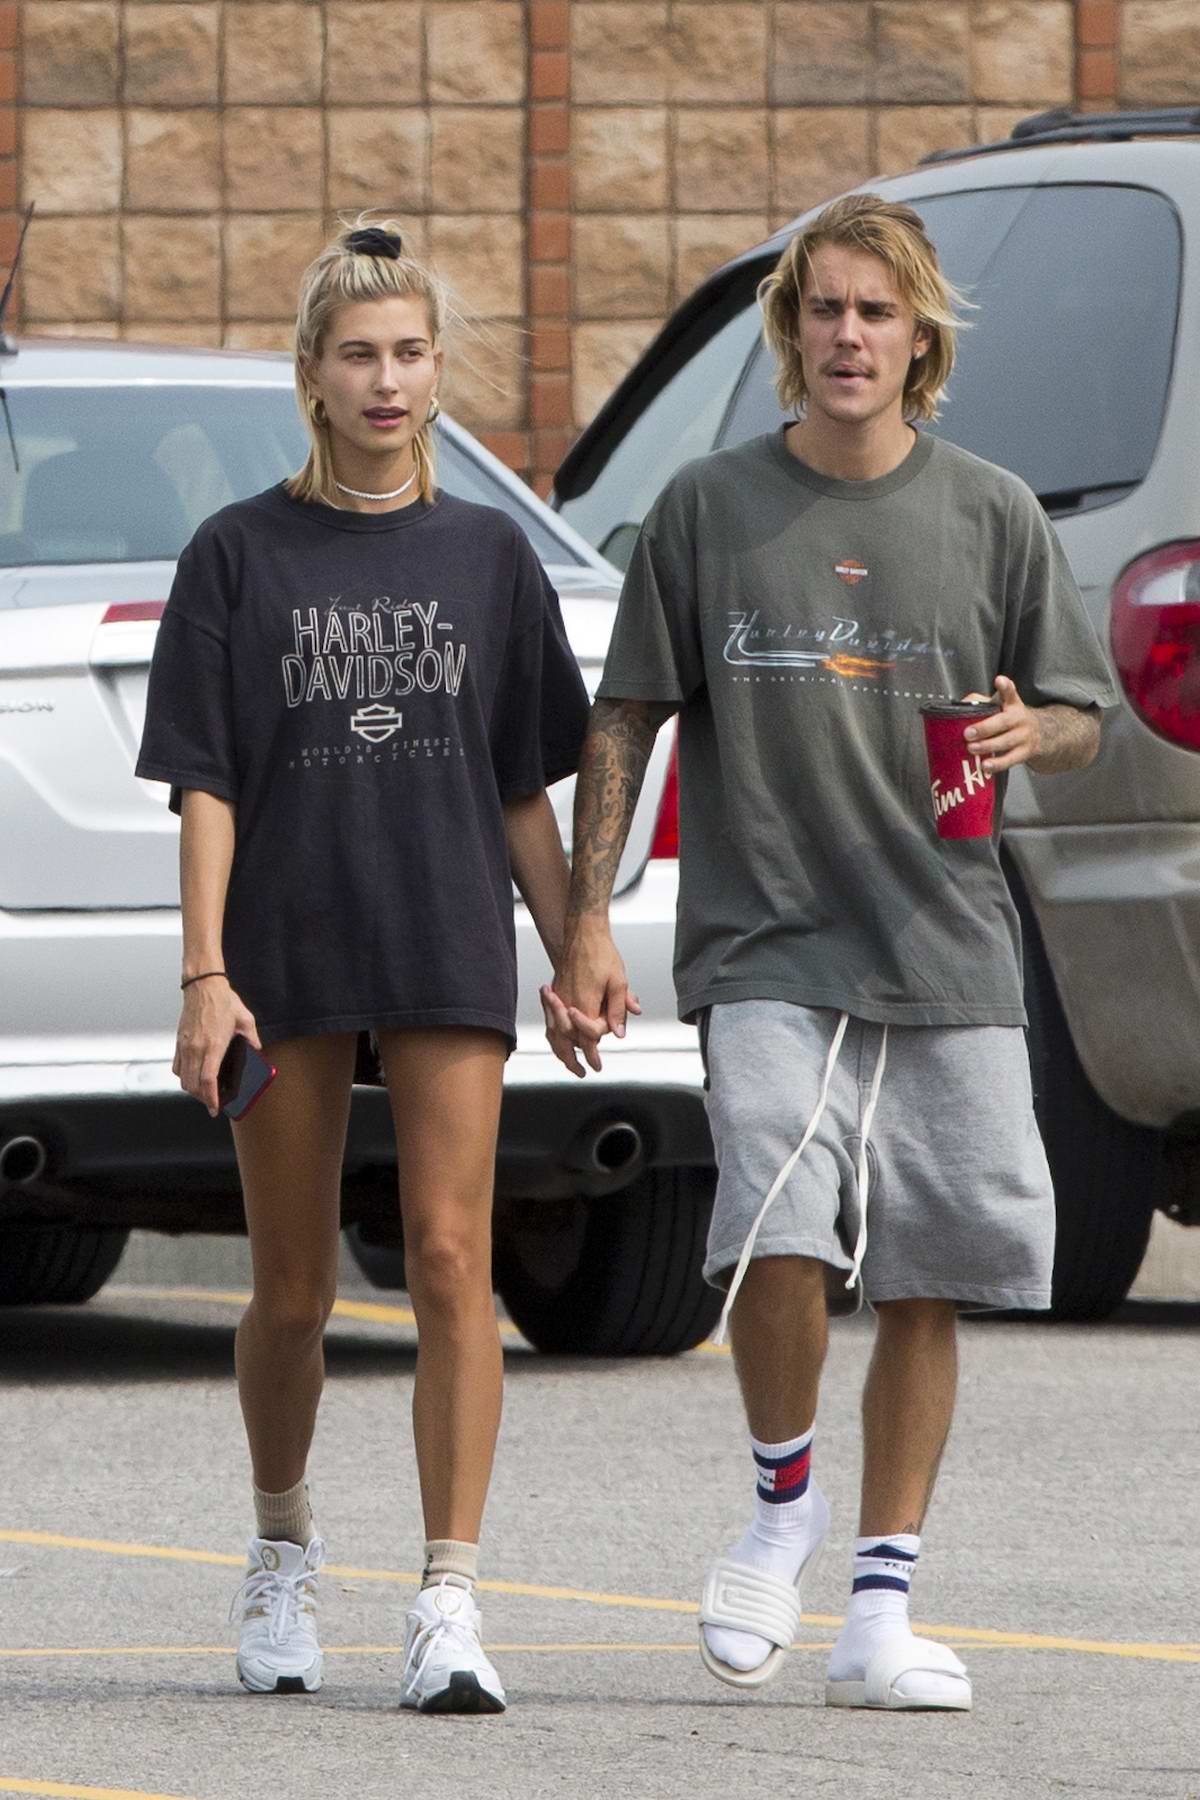 Hailey Baldwin and Justin Bieber gets in some PDA while out and about in Ontario, Canada